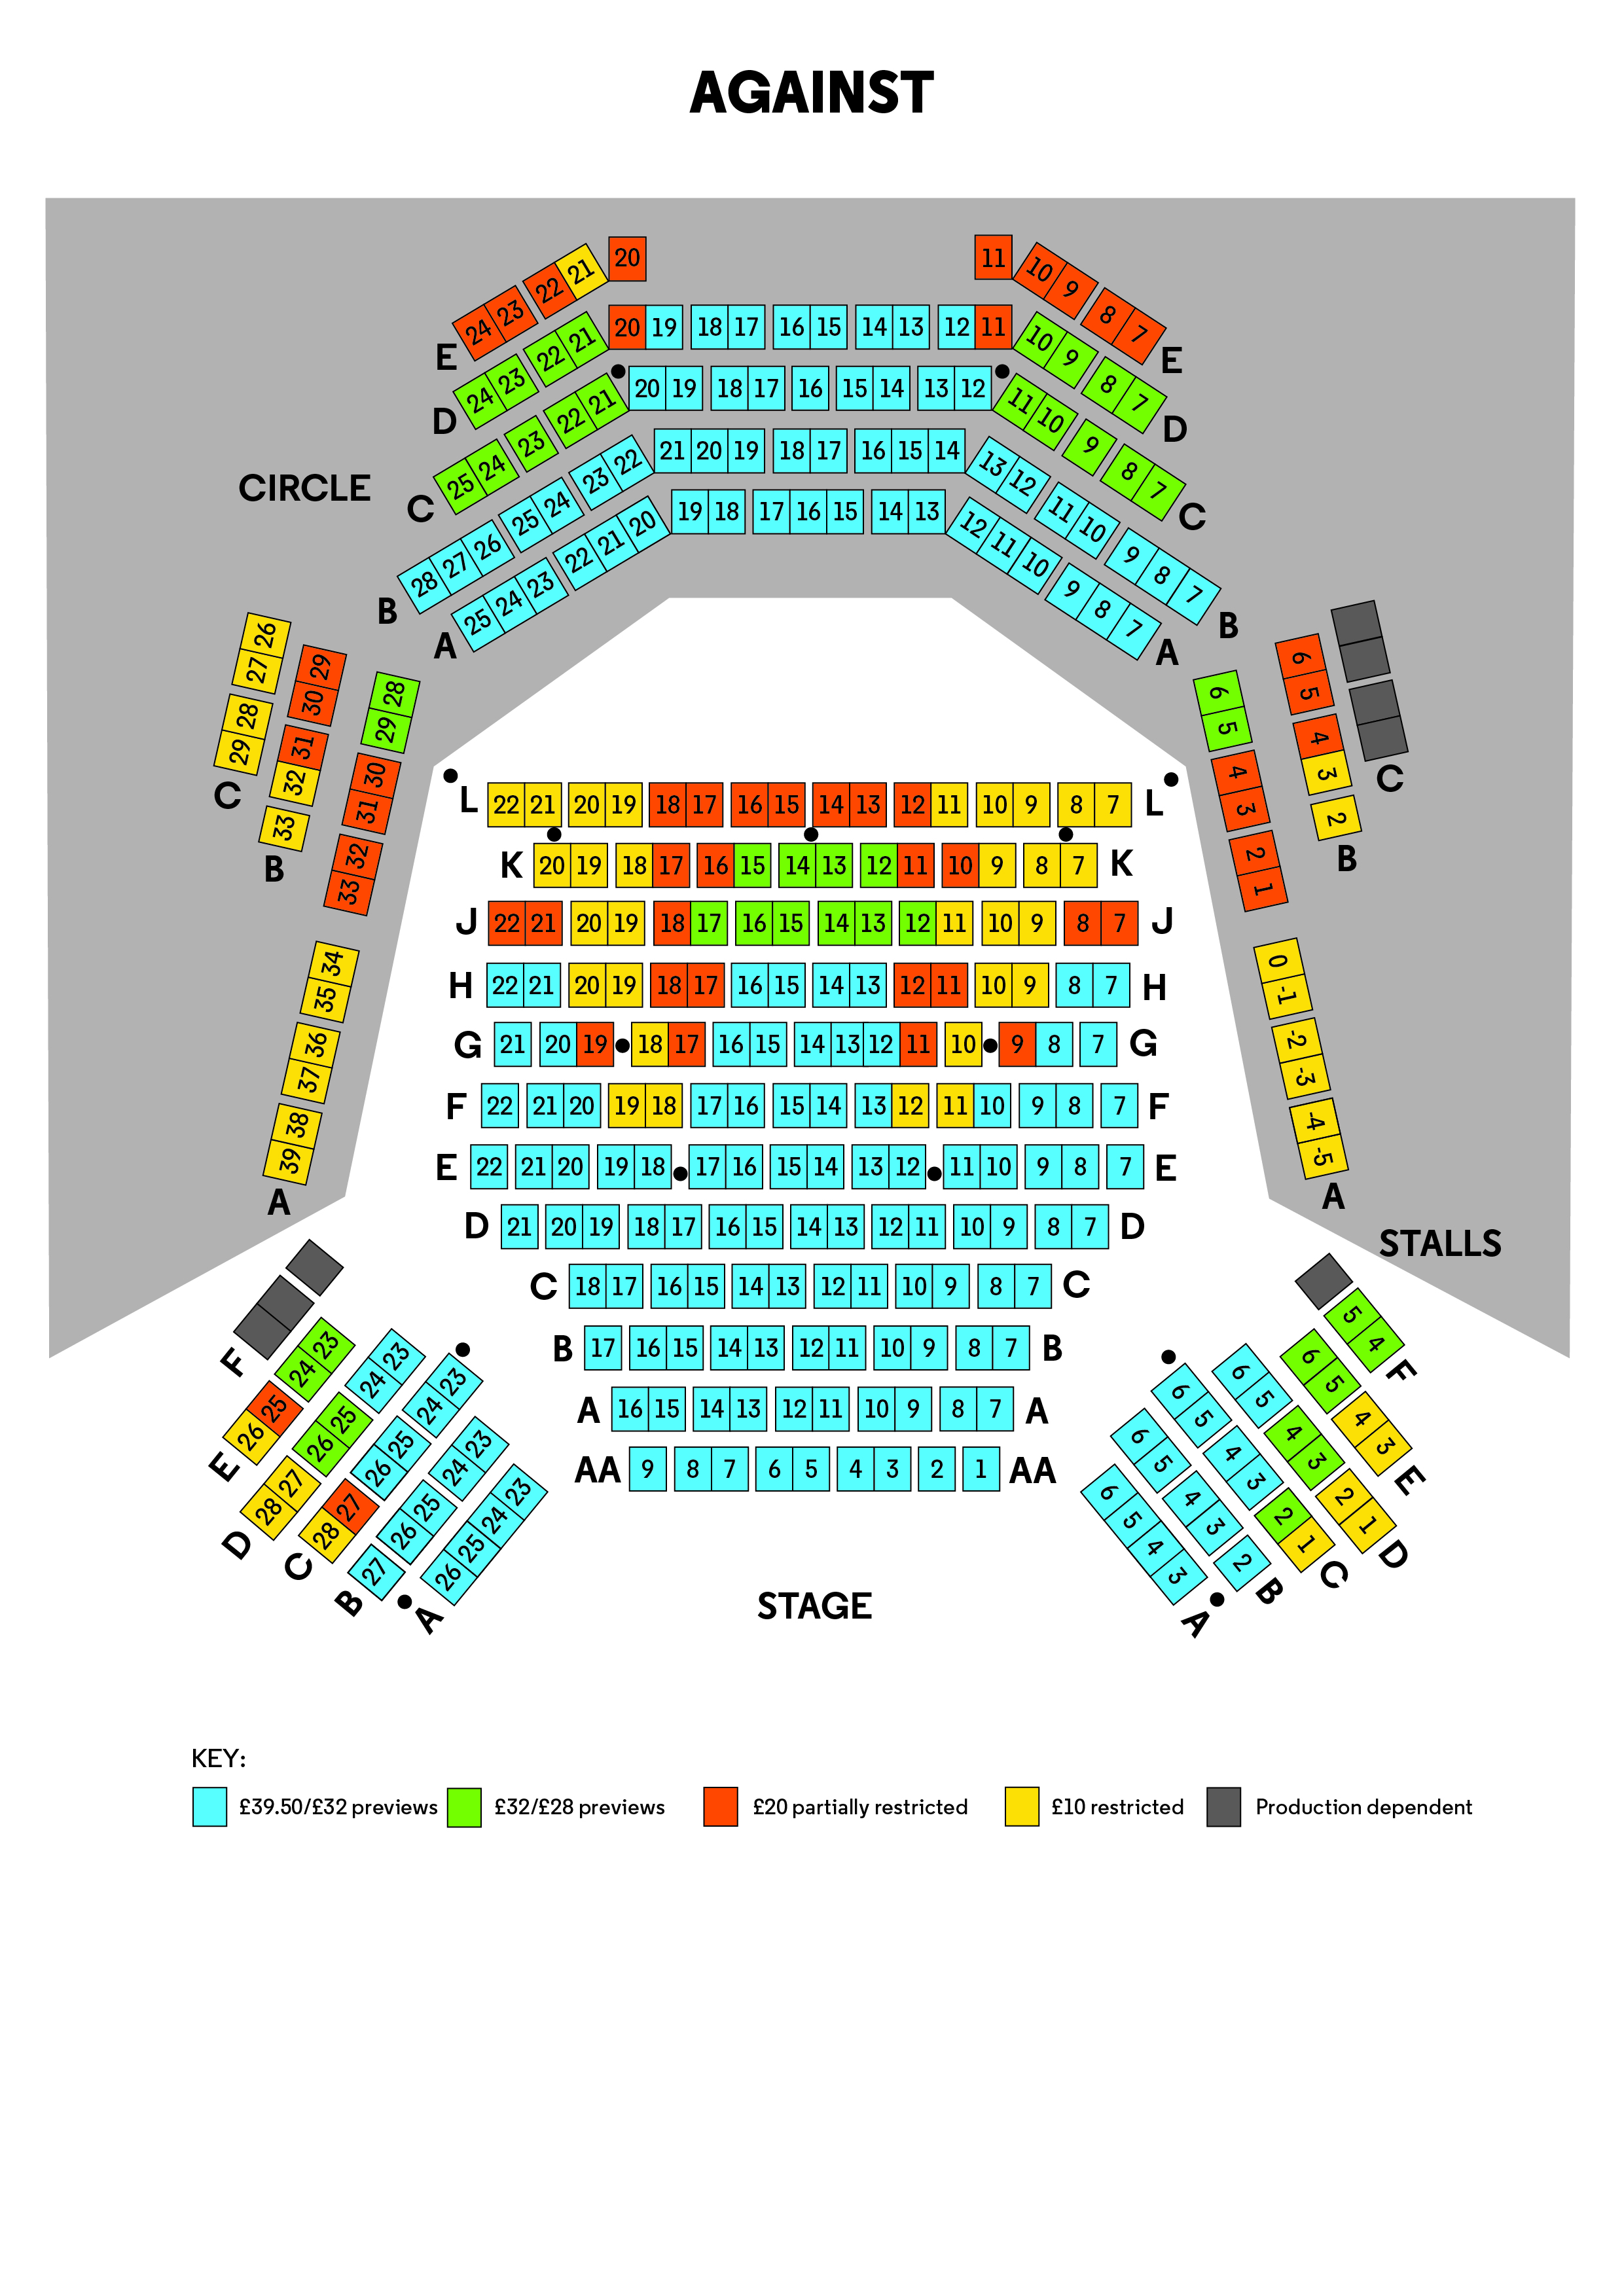 Seating Plan Against NEW